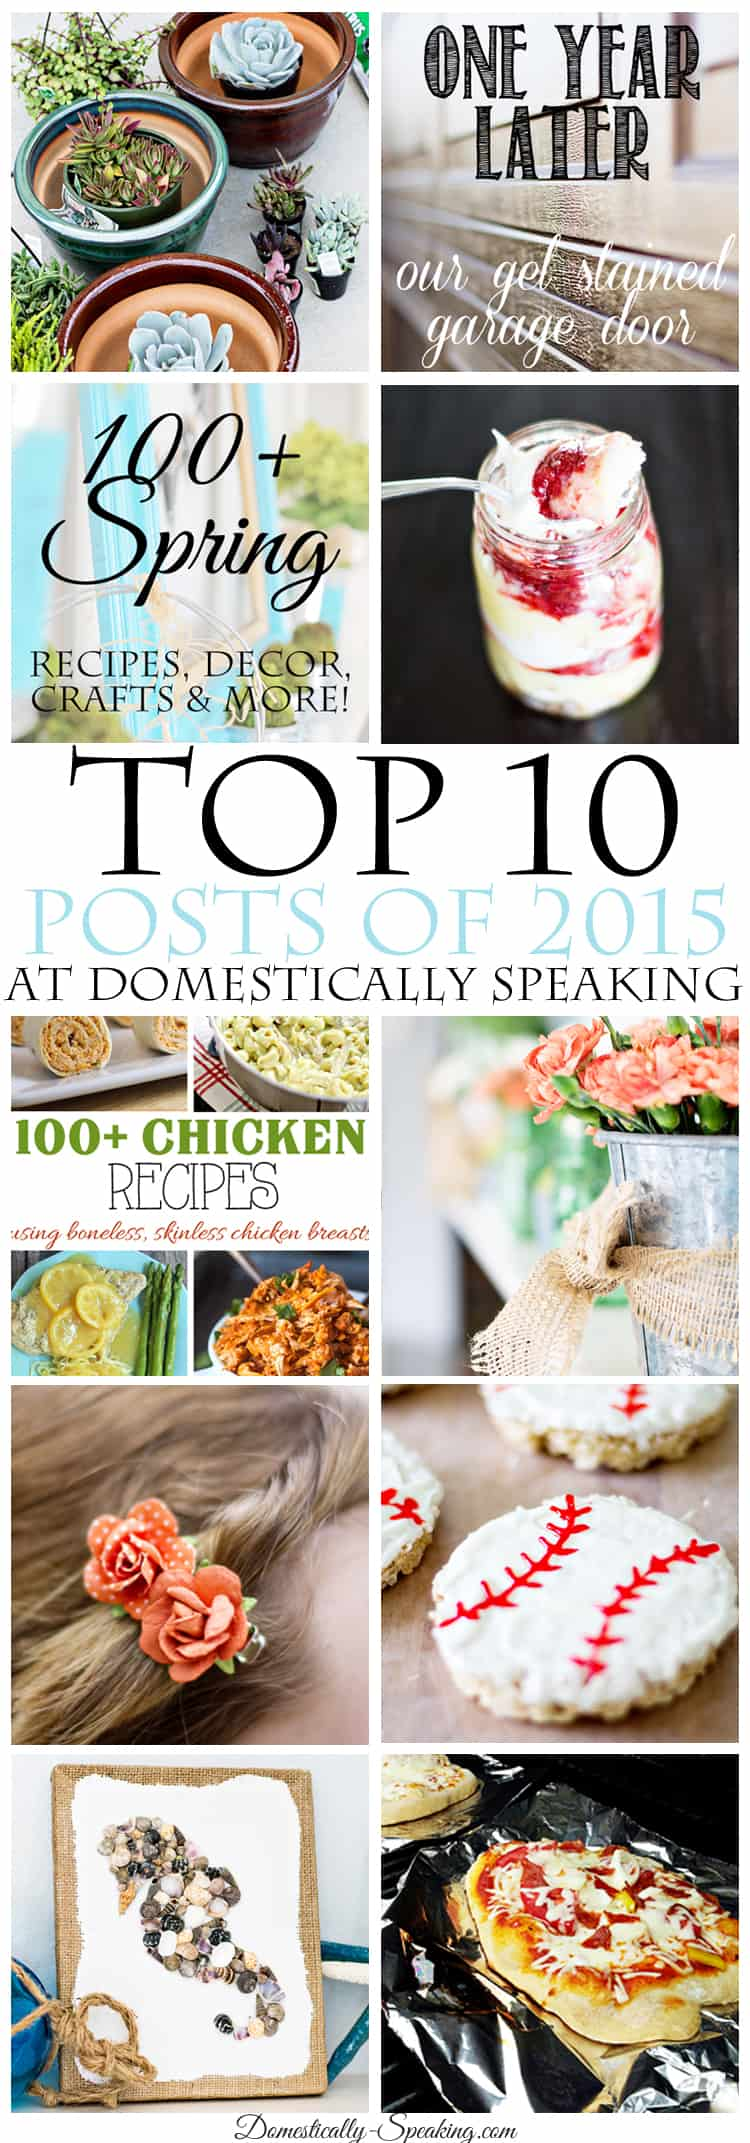 Top Ten Posts of 2015 from Domestically Speaking